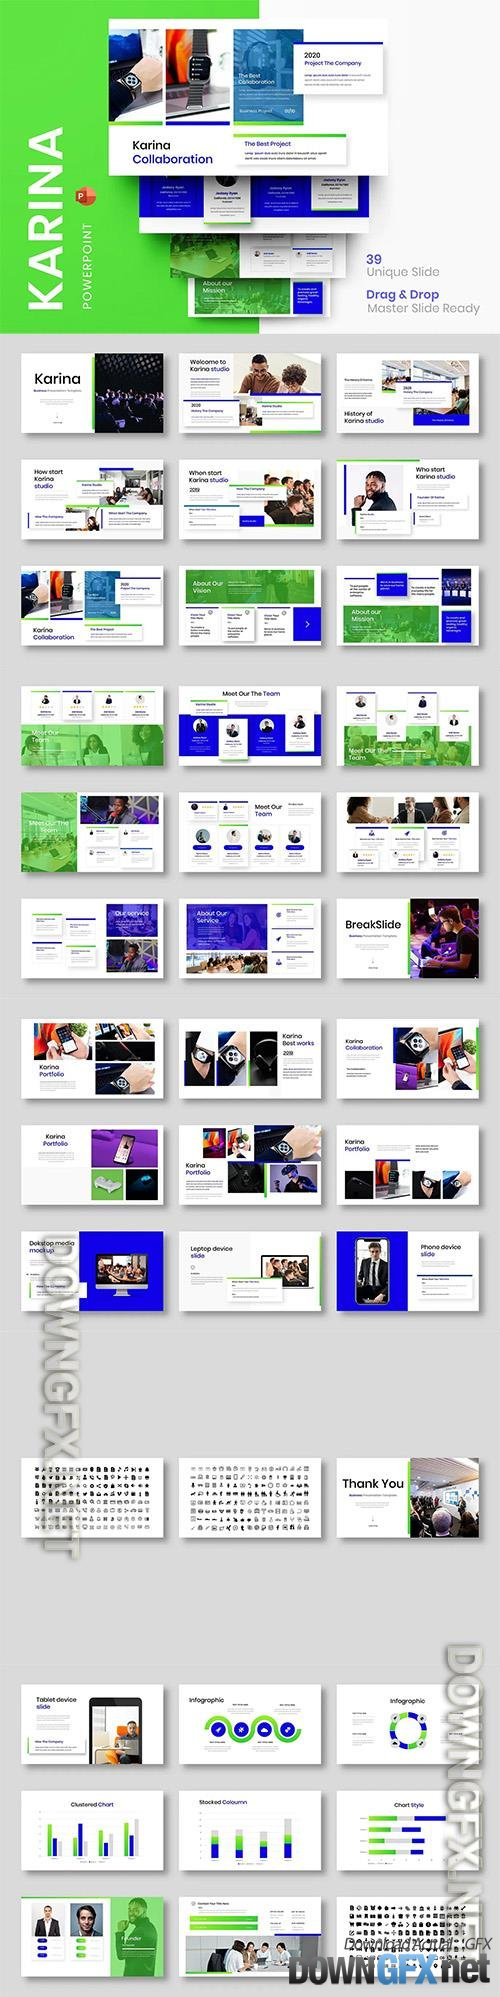 Karina - Business Powerpoint, Keynote and Google Slides Template